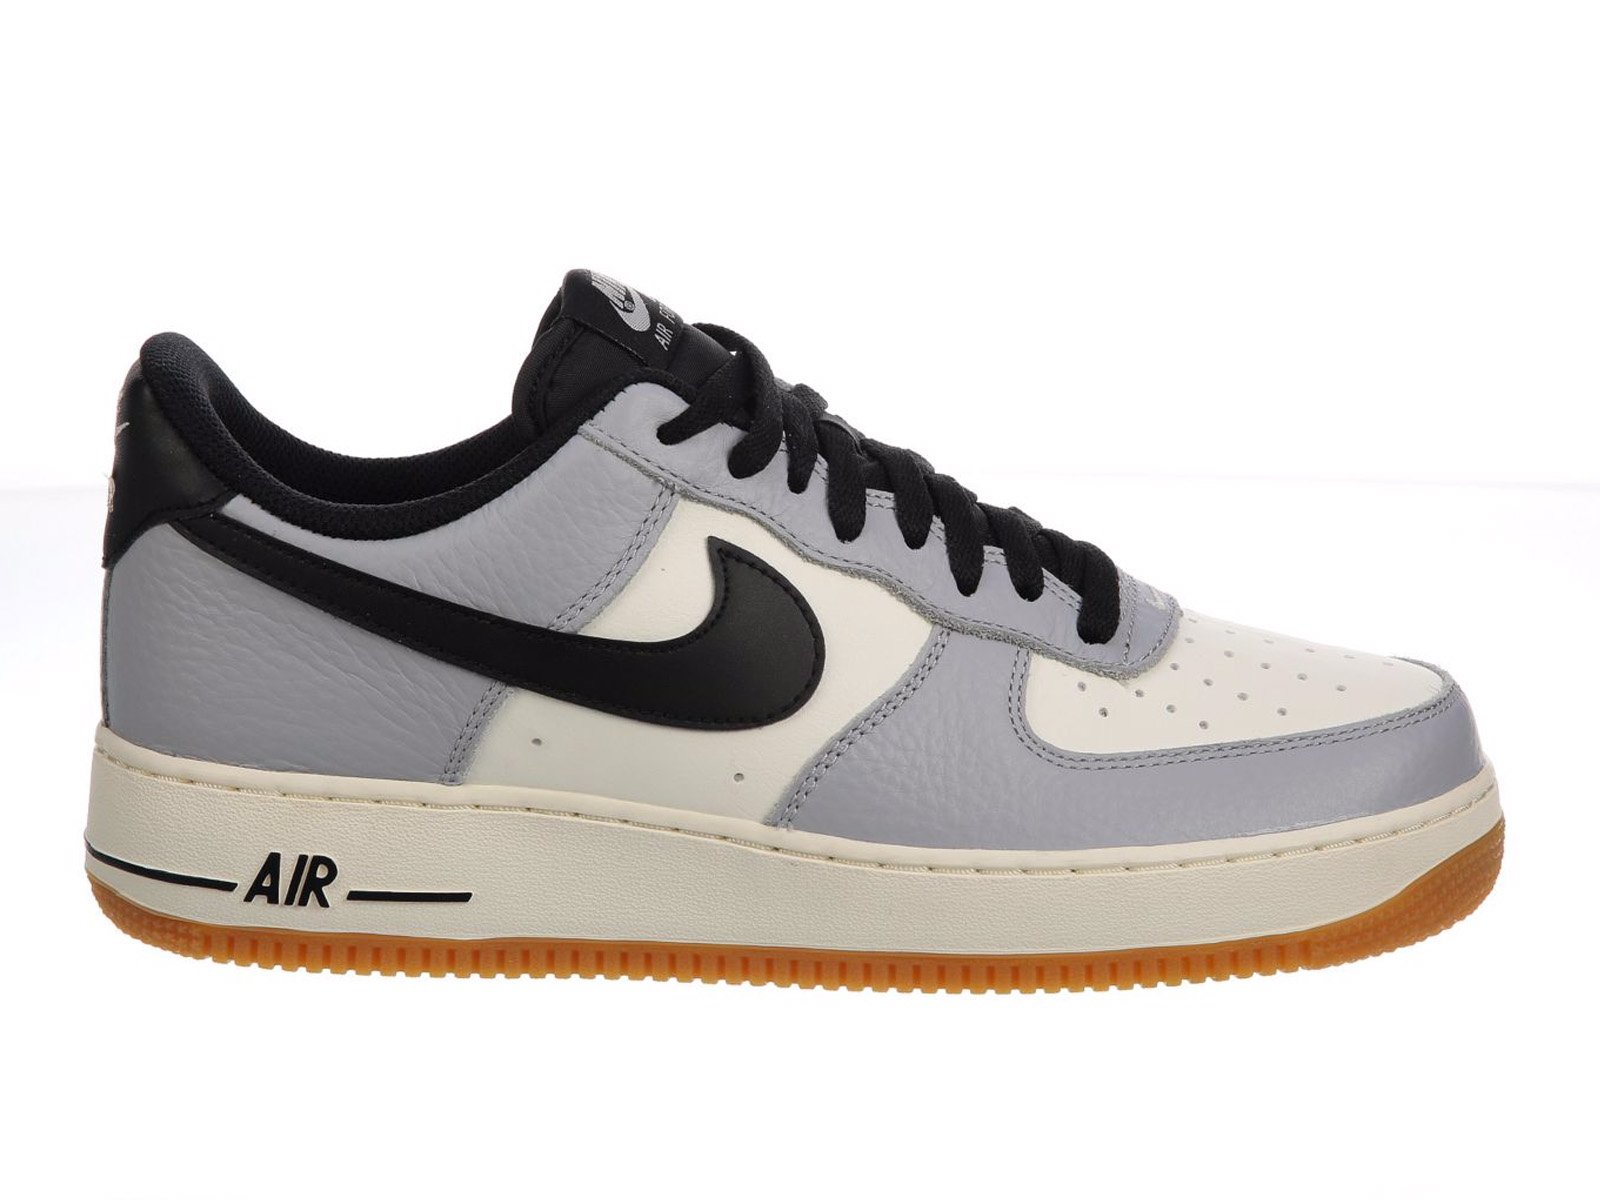 4502b0d12e15 Nike Men s Air Force 1 Low Wolf Grey Black Sail Gum Light Brown Leather  Casual Shoes 12 M US Apparel